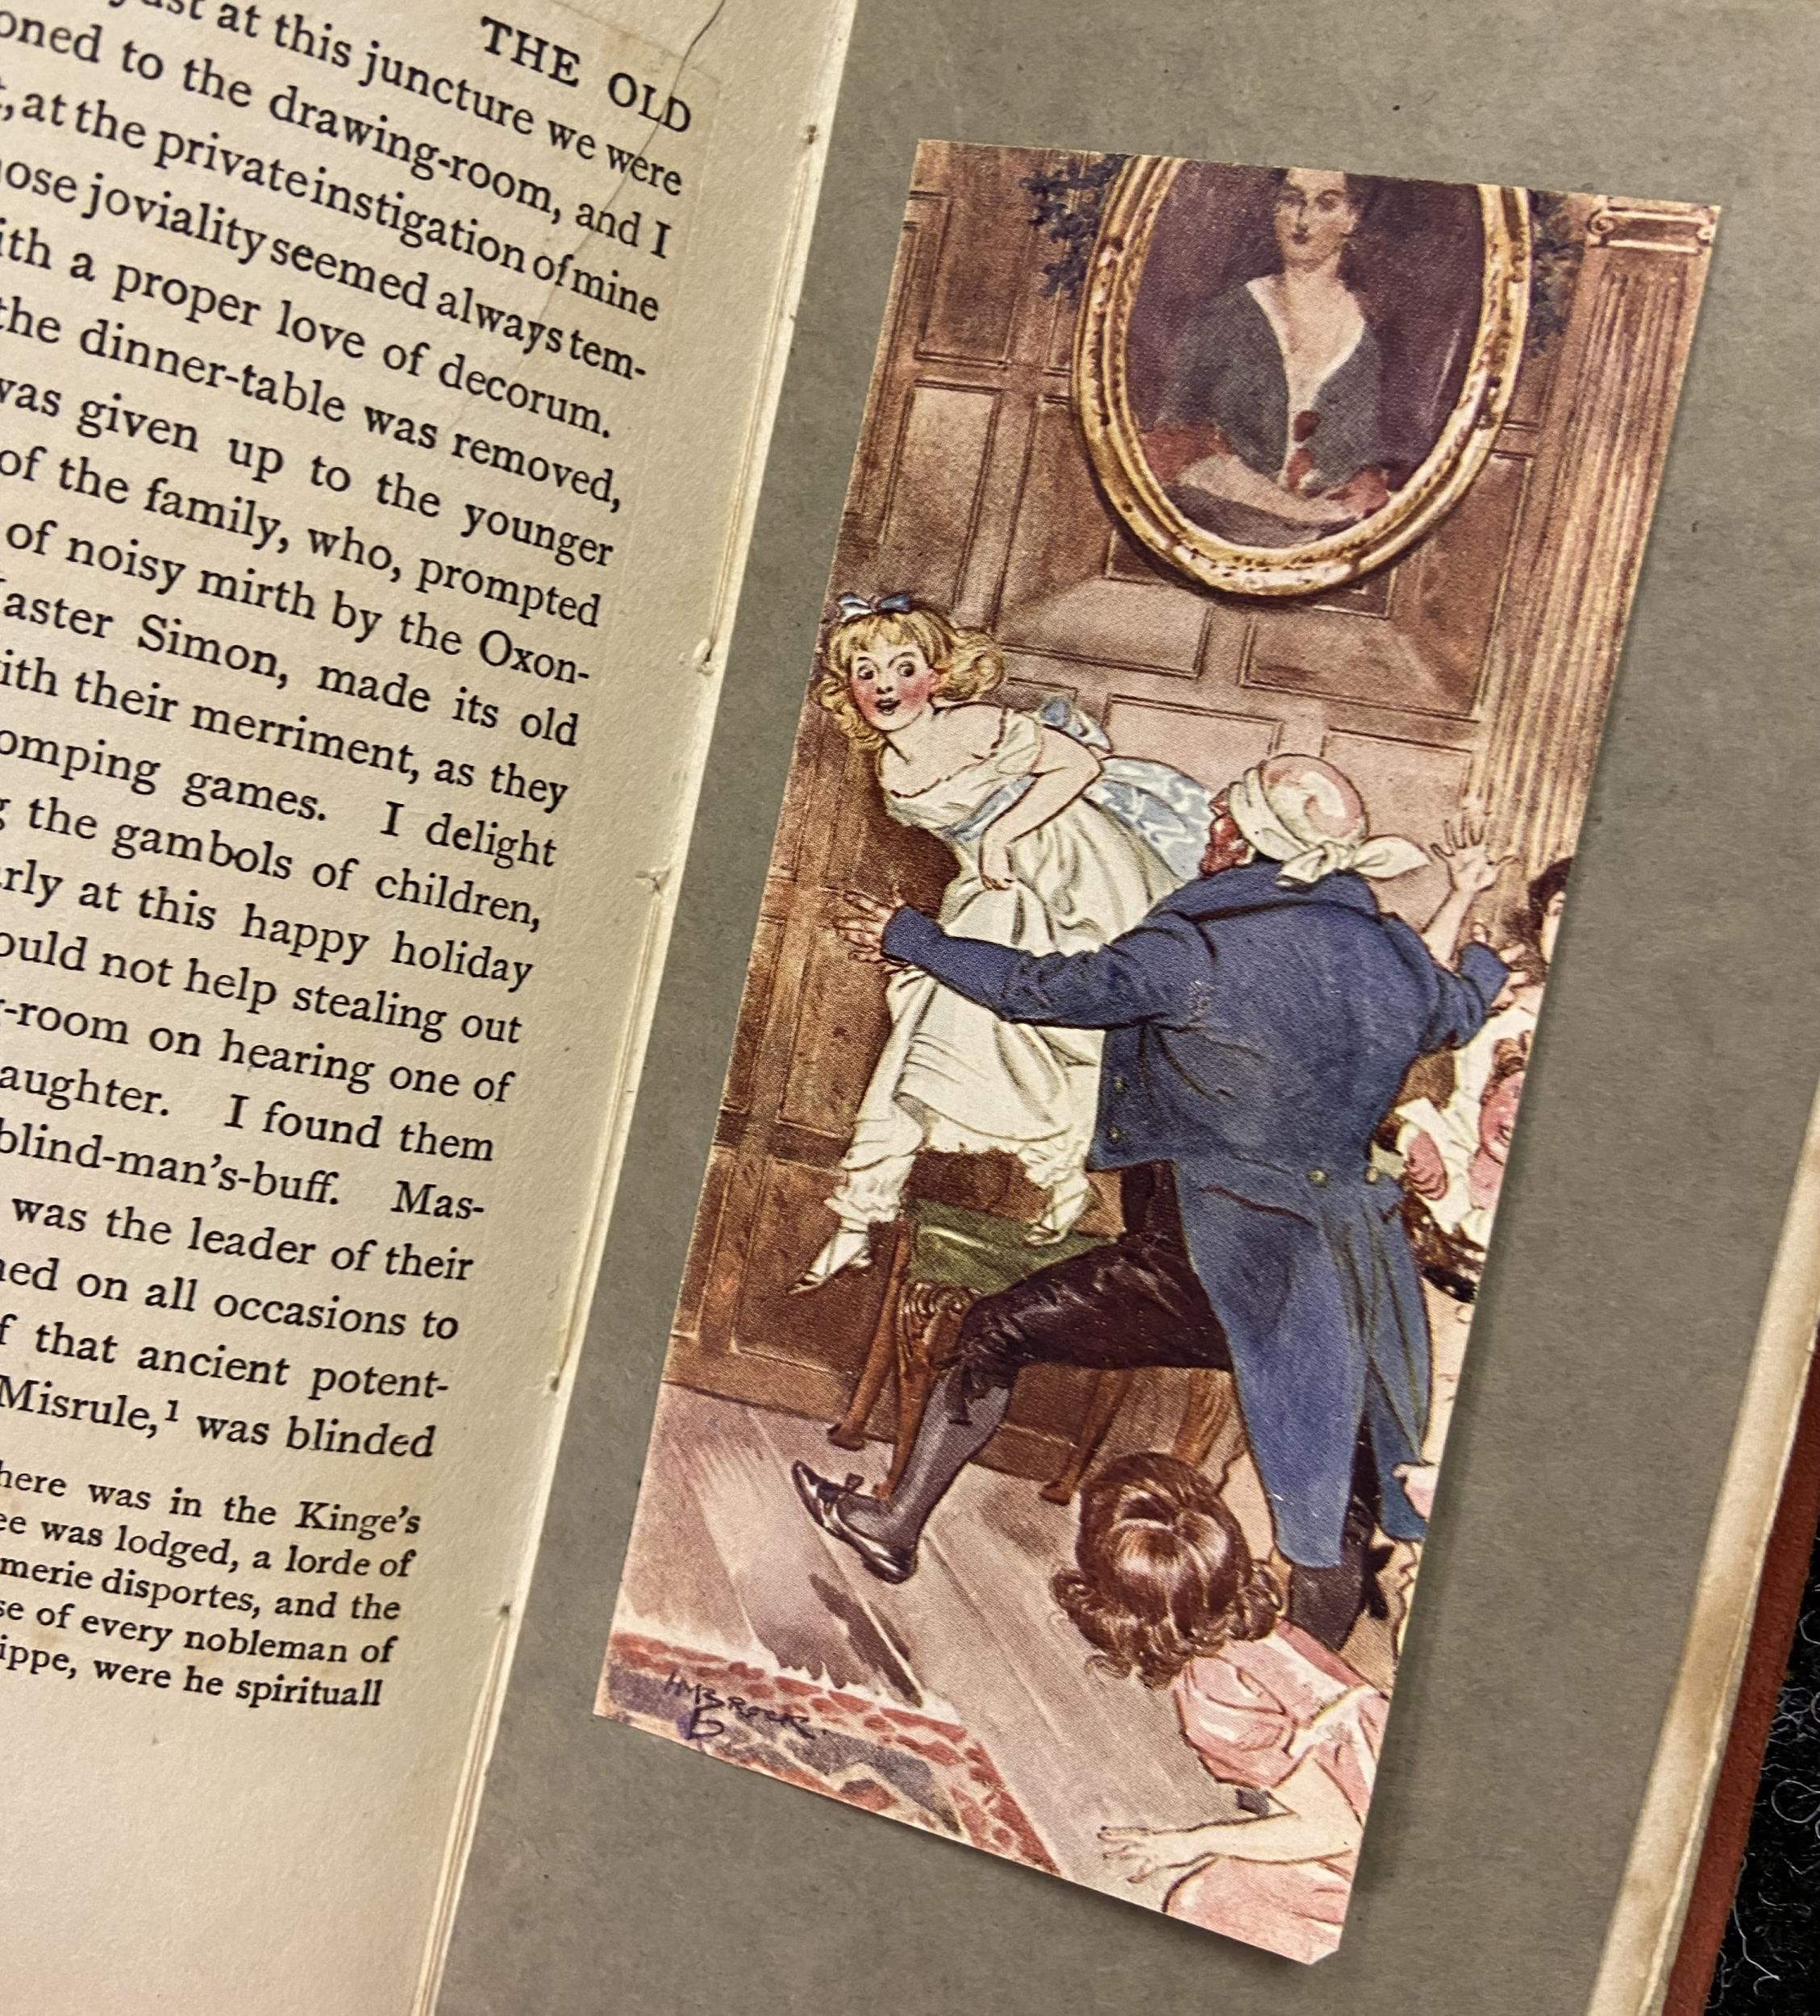 'The Old Christmas Dinner by Washington IRVING with Illustrations by H.M Brock - Image 4 of 4